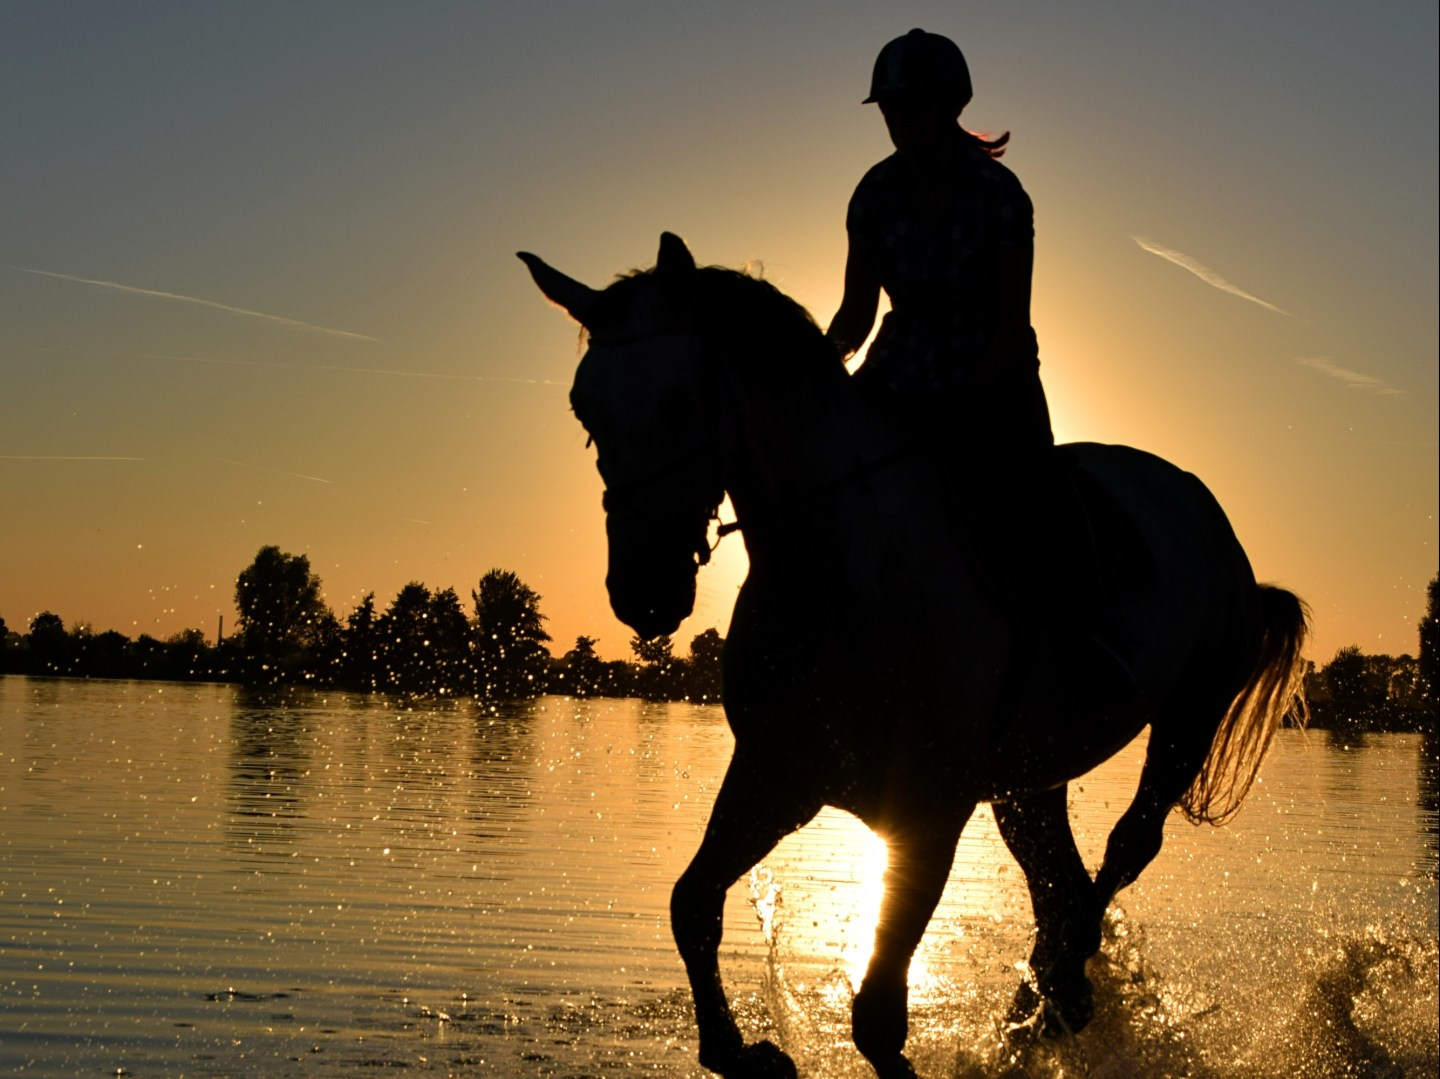 horse and rider silhouette against sunset beach backdrop